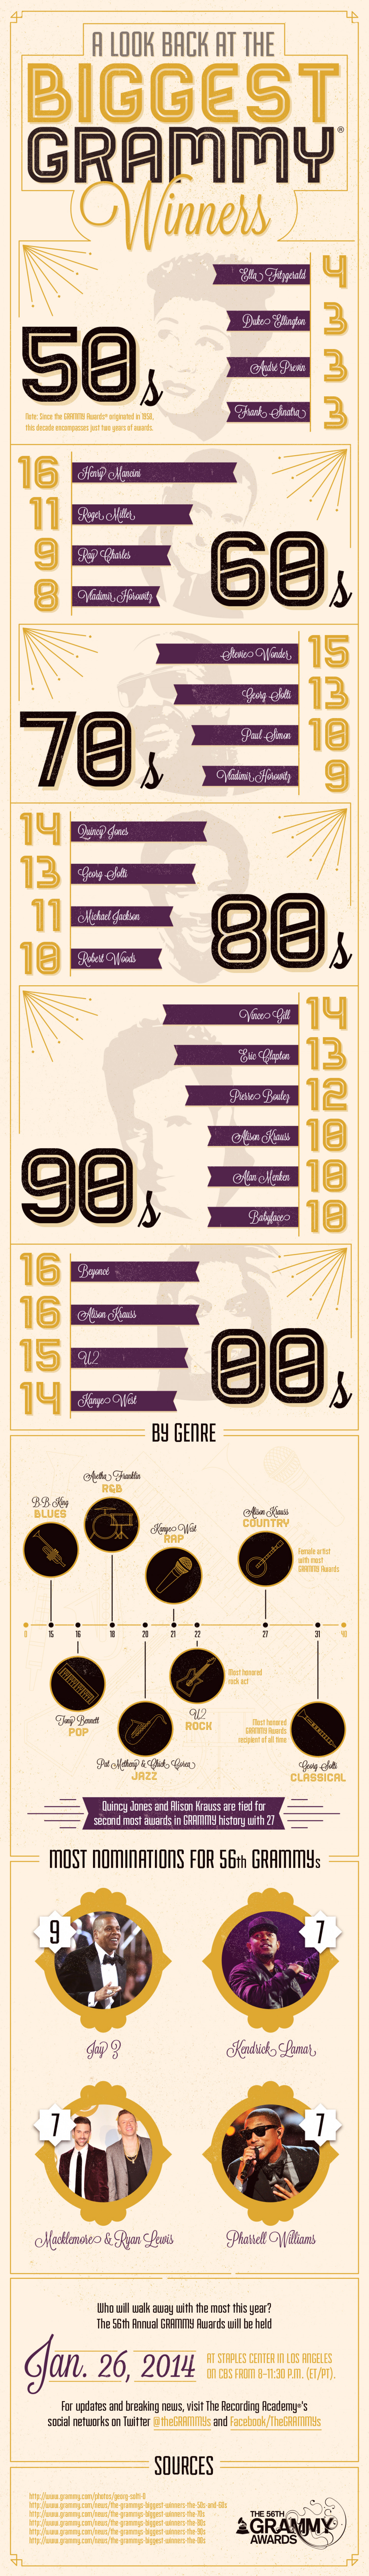 A Look Back at the Biggest GRAMMY Winners Infographic